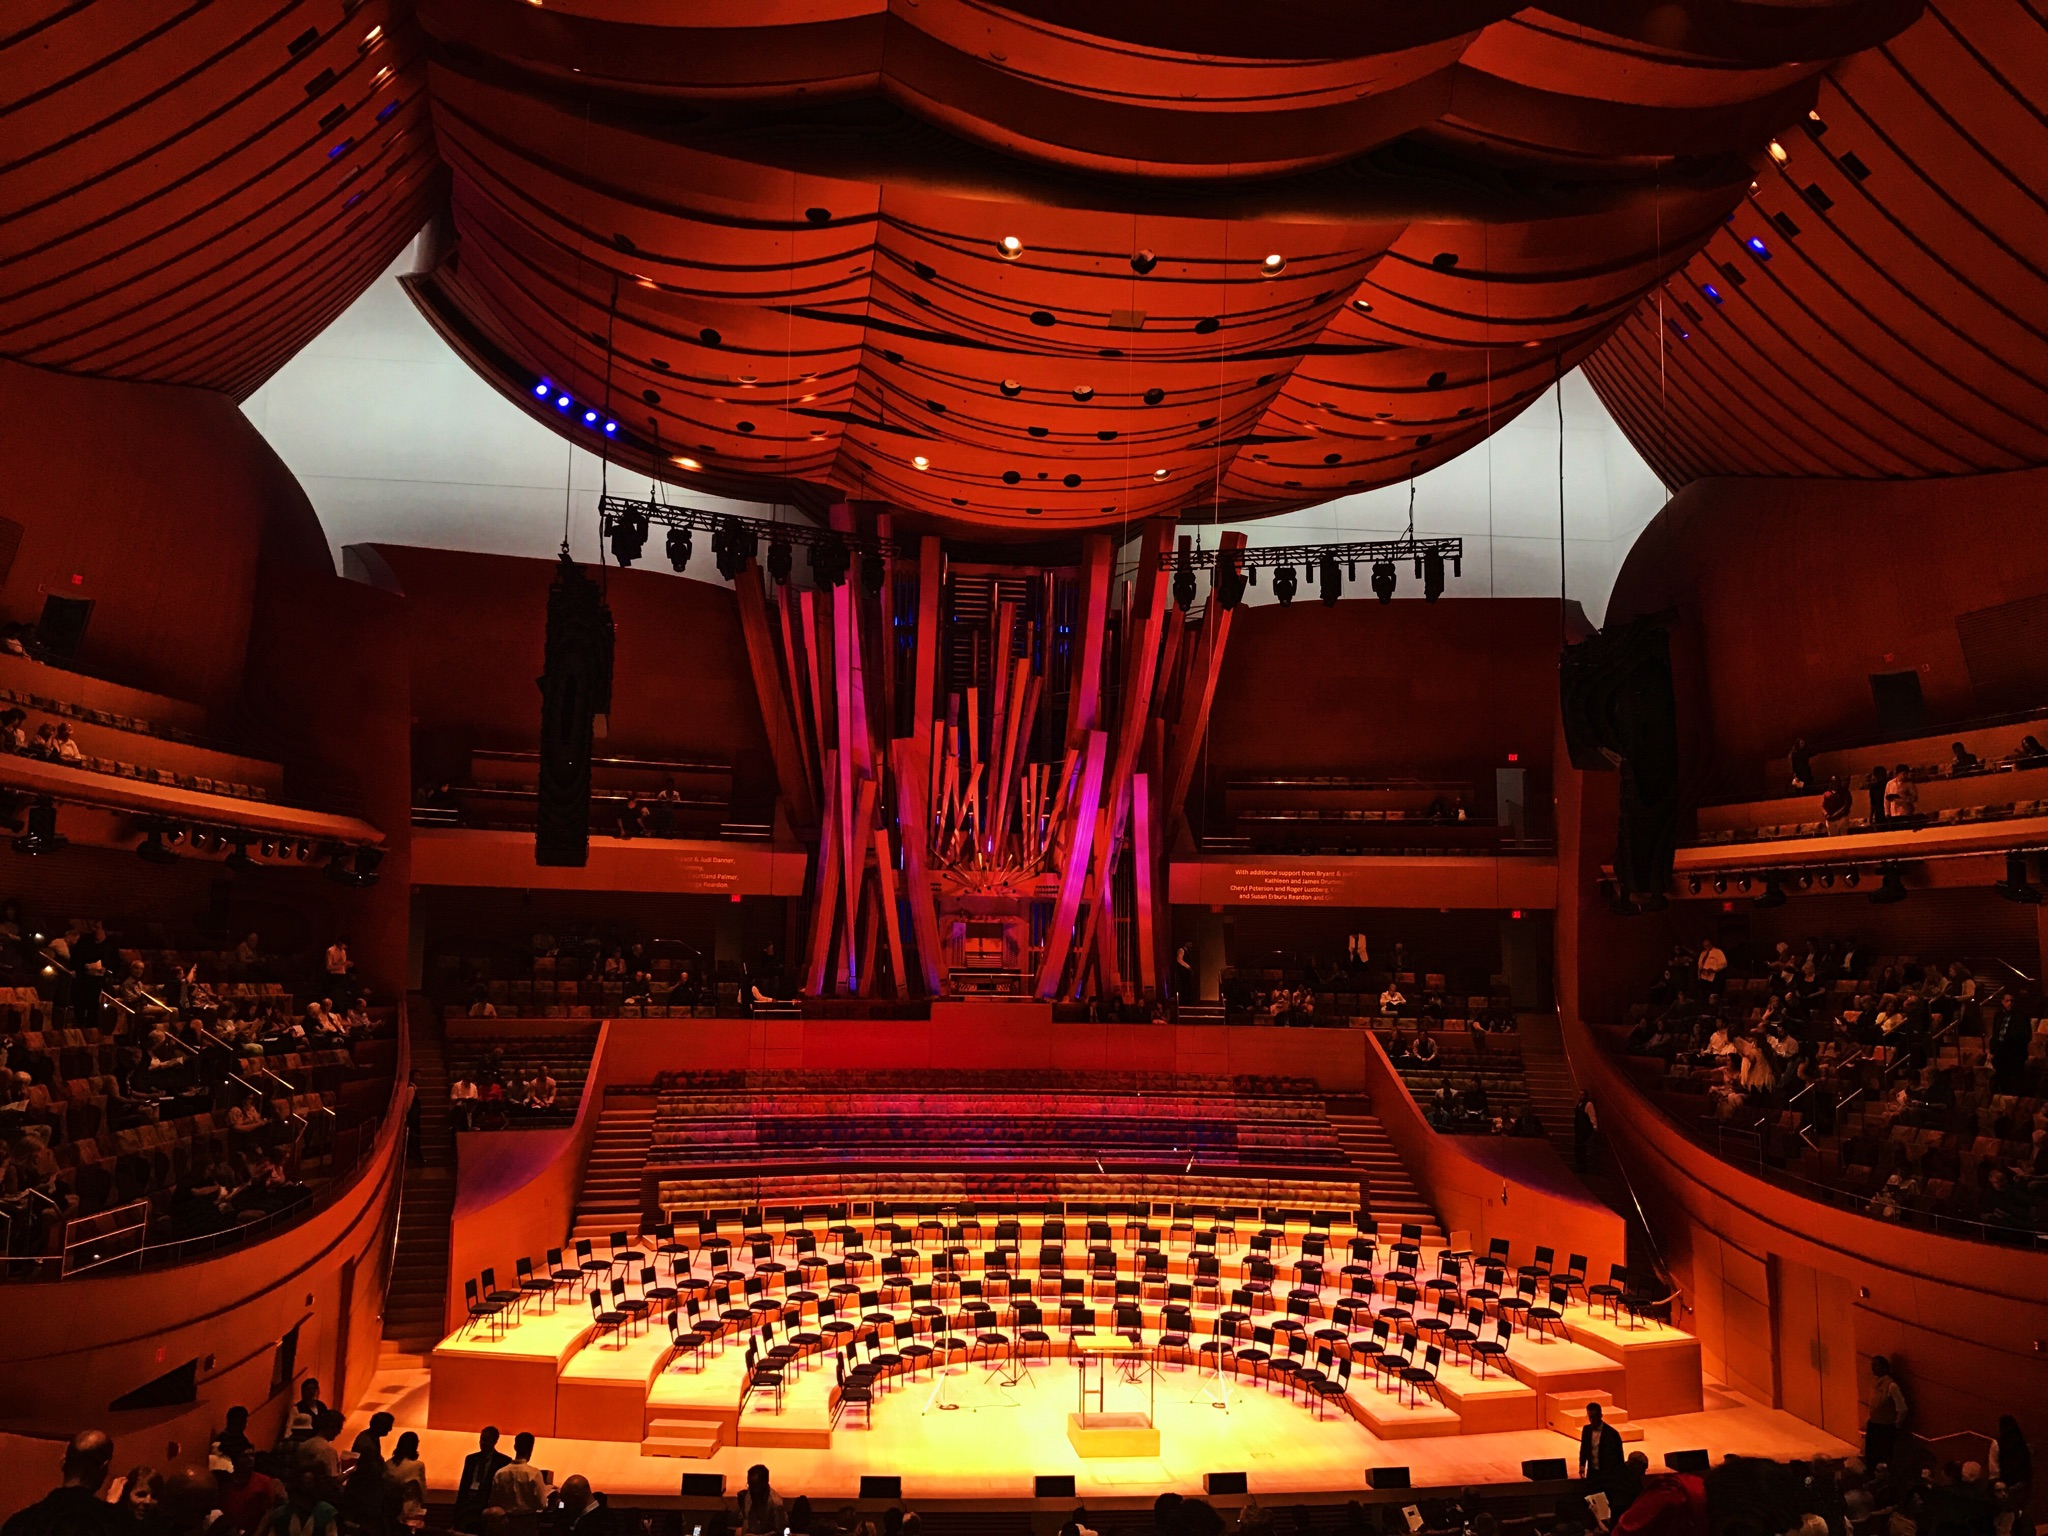 Walt Disney Concert Hall where the Los Angeles Master Chorale sang under direction of Grant Gershon, Jenny Wong, and Eric Whitacre